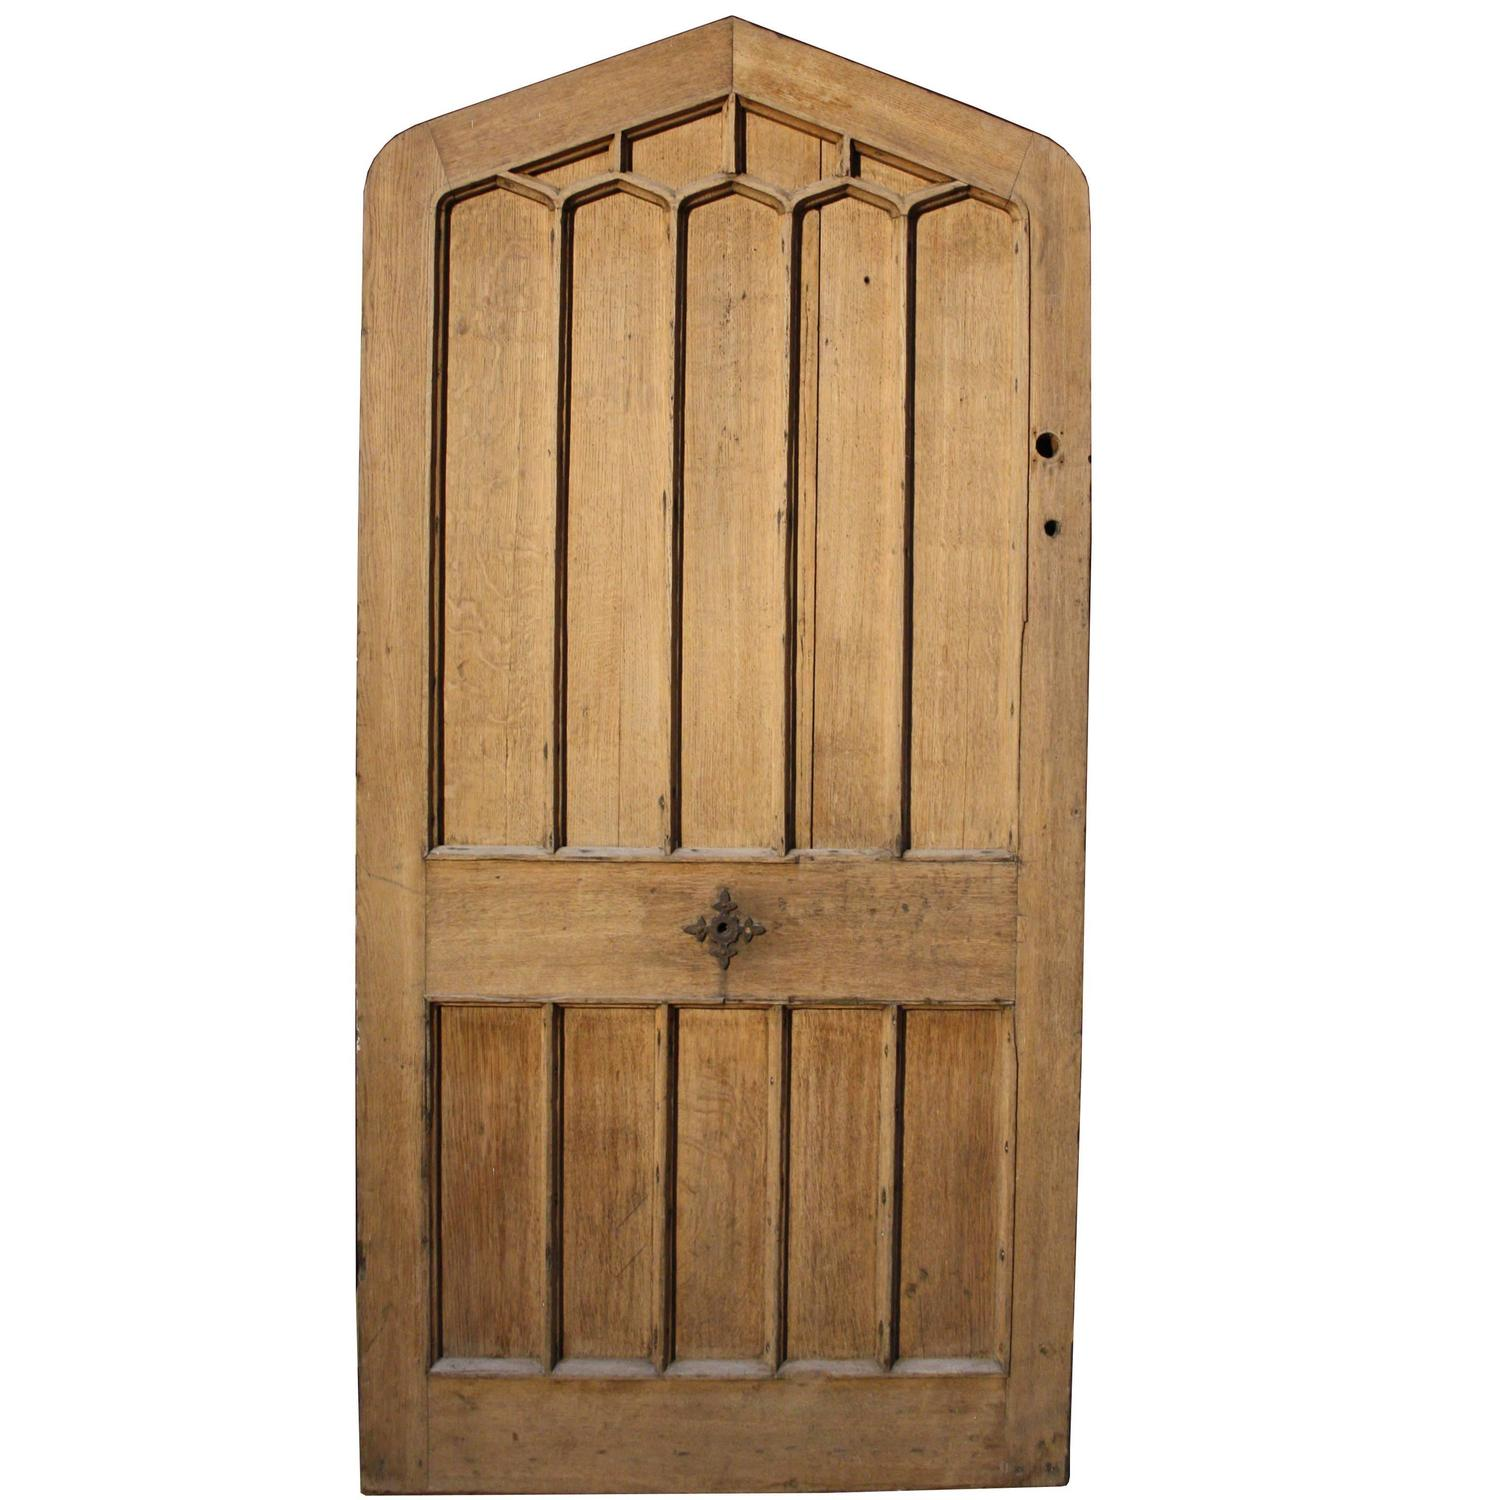 19th Century Arched Oak Front Door For Sale At 1stdibs